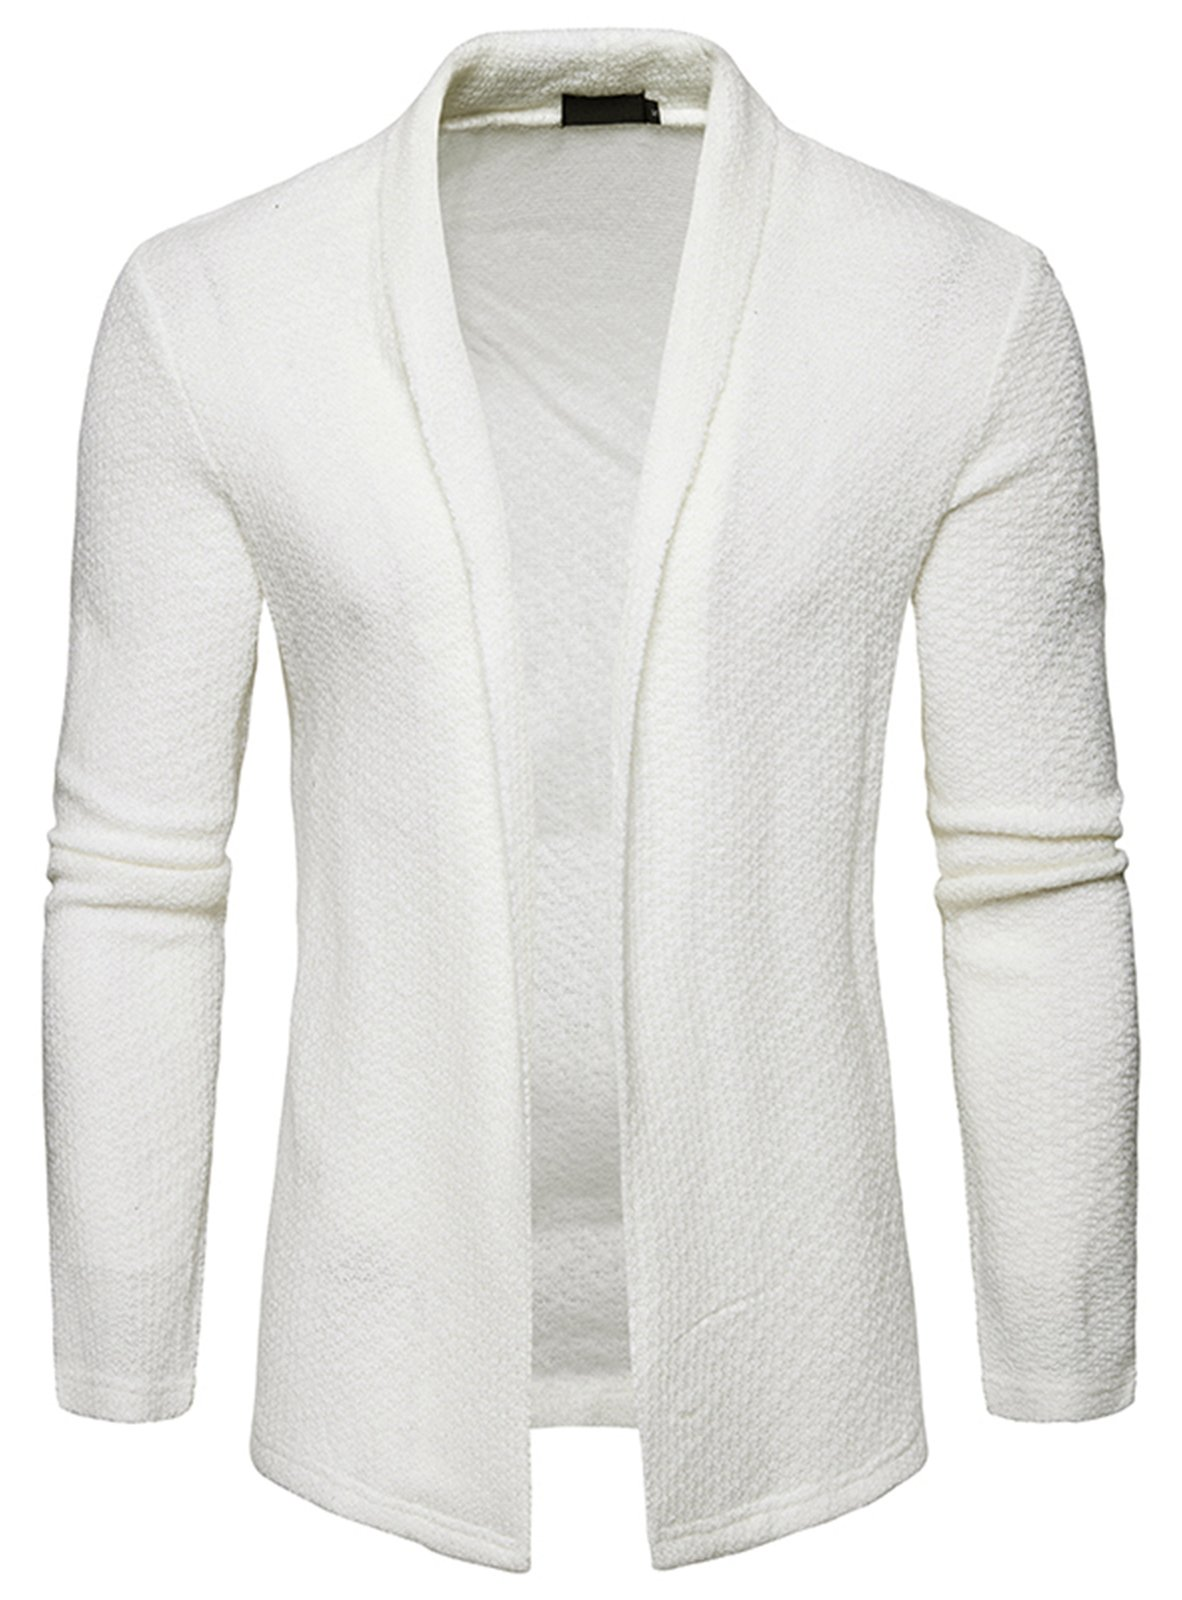 WHATLEES Mens Casual Long Sleeve Open Front Slim Fit Shawl Collar Cardigans Sweater B938-White-XL by WHATLEES